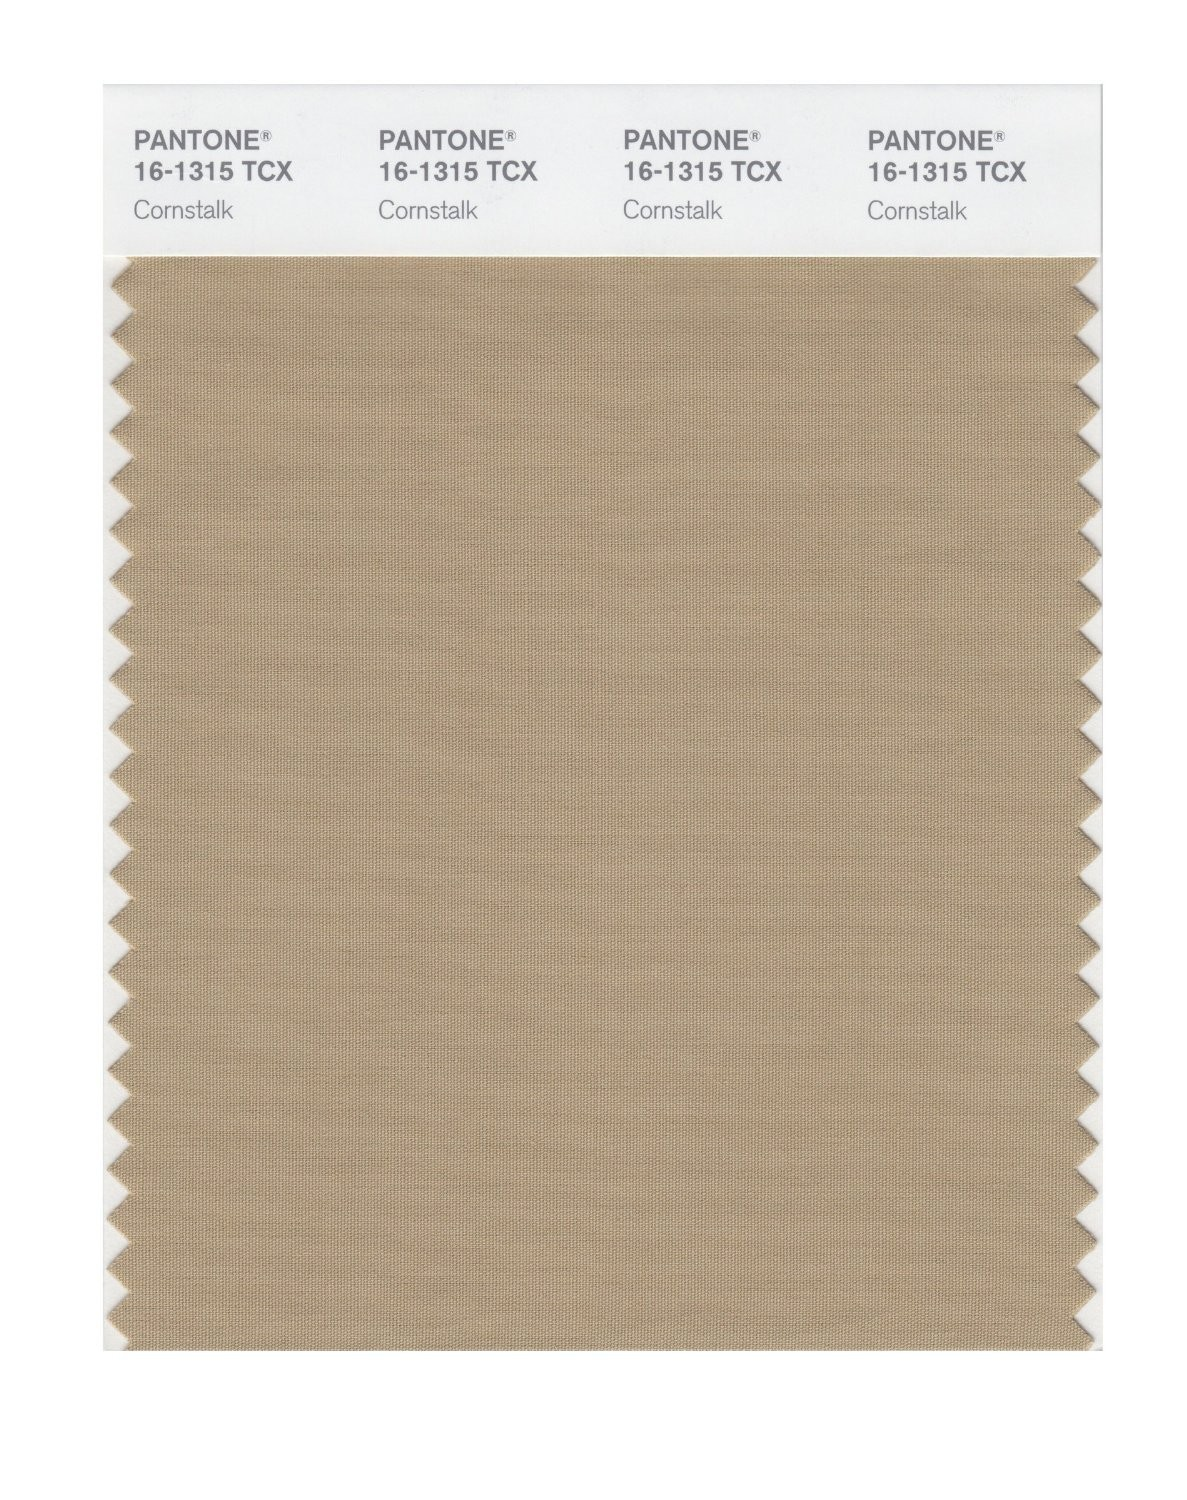 Pantone 16-1315 TCX Swatch Card Cornstalk